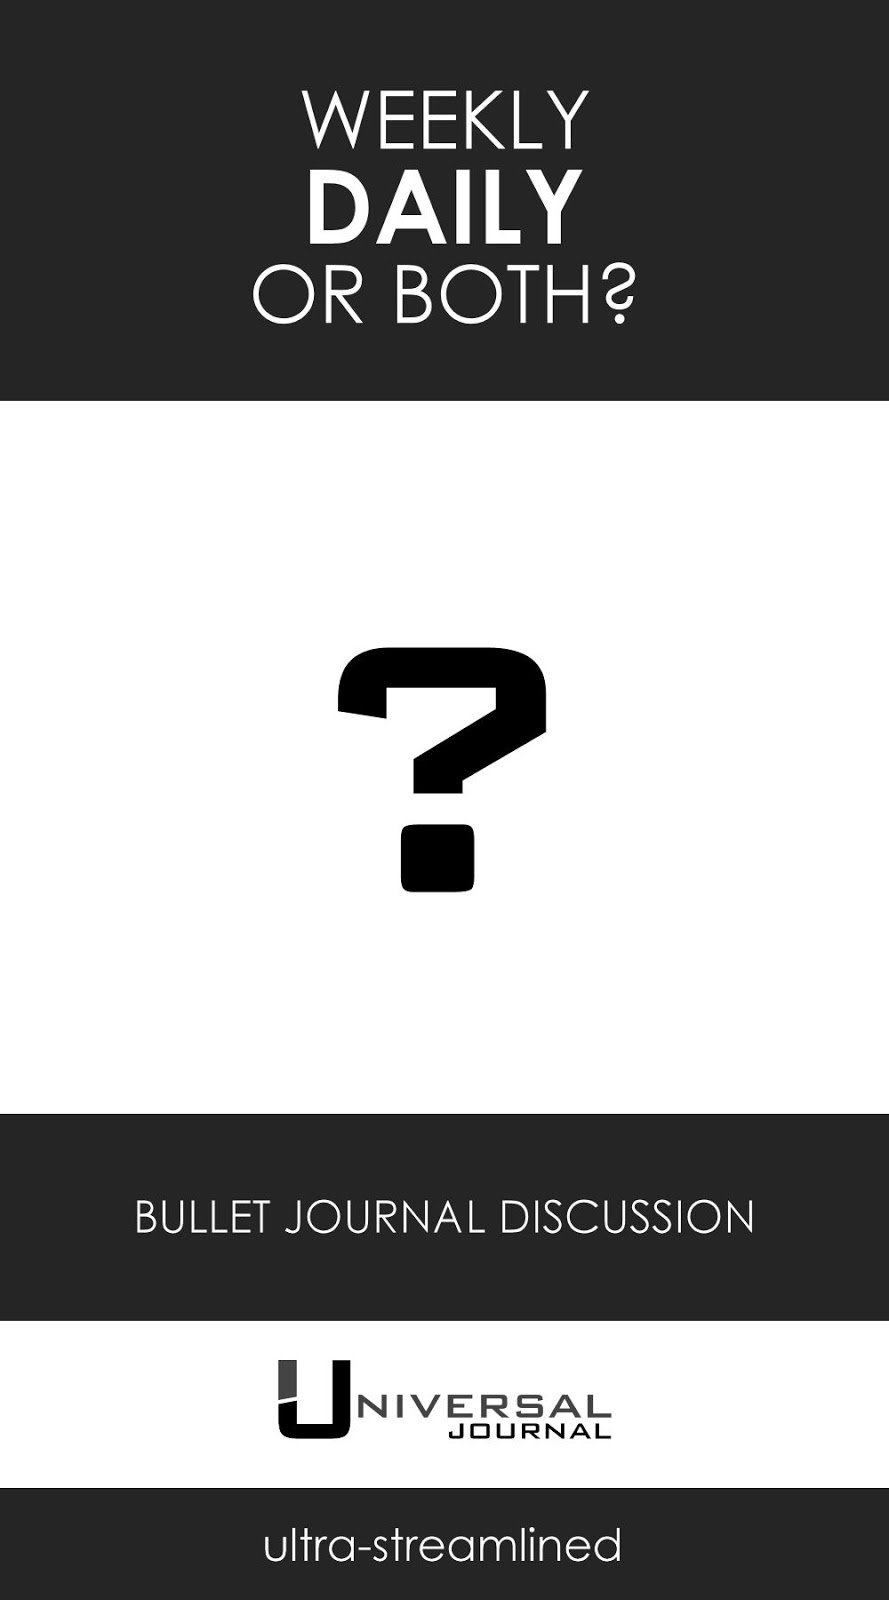 bullet journal weekly daily discussion